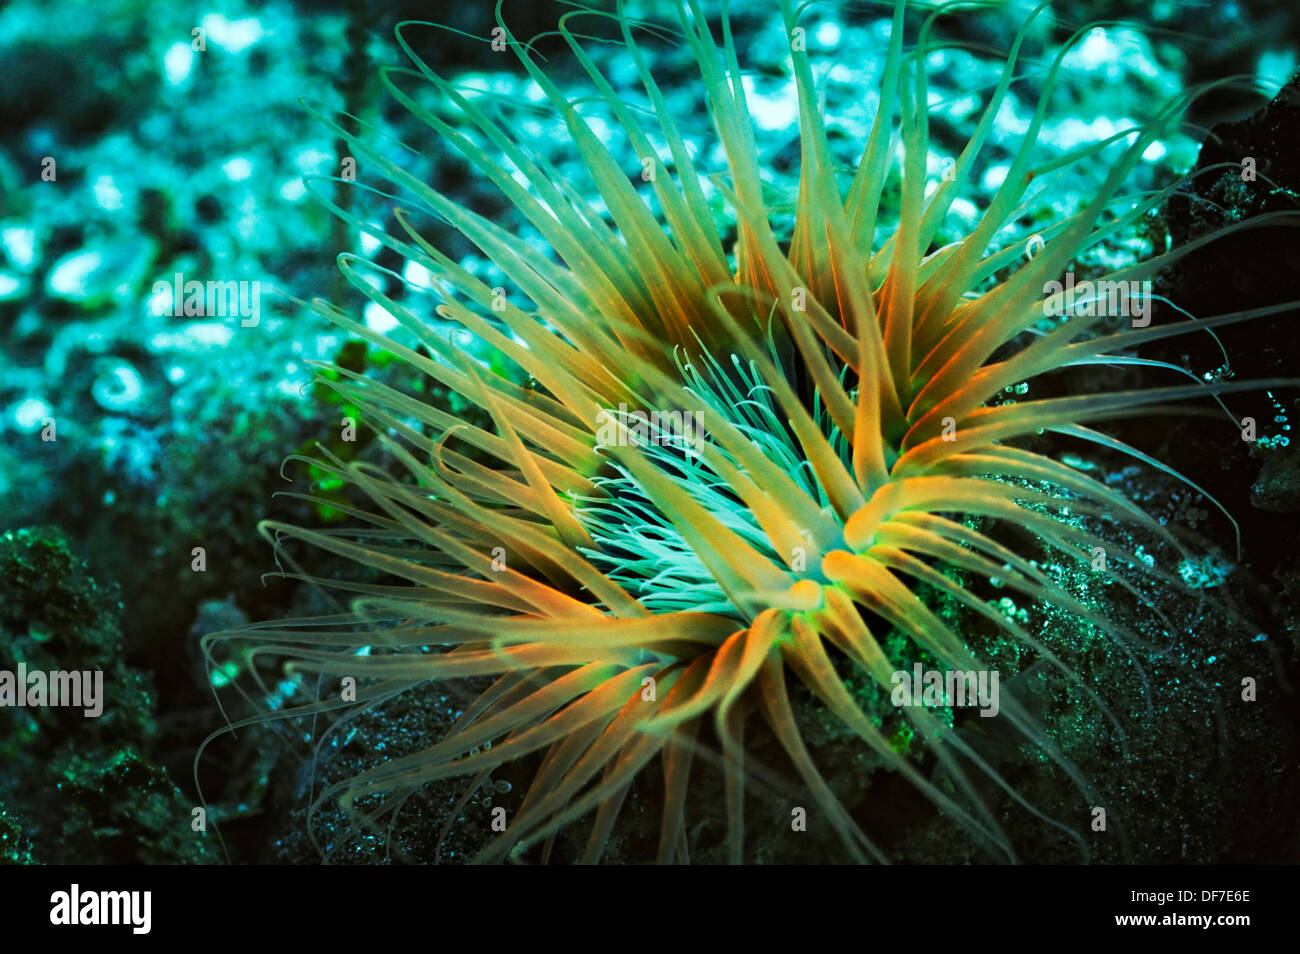 Anémone tubicoles (Ceriantharia), Raja Ampat, Papouasie occidentale, en Indonésie Photo Stock